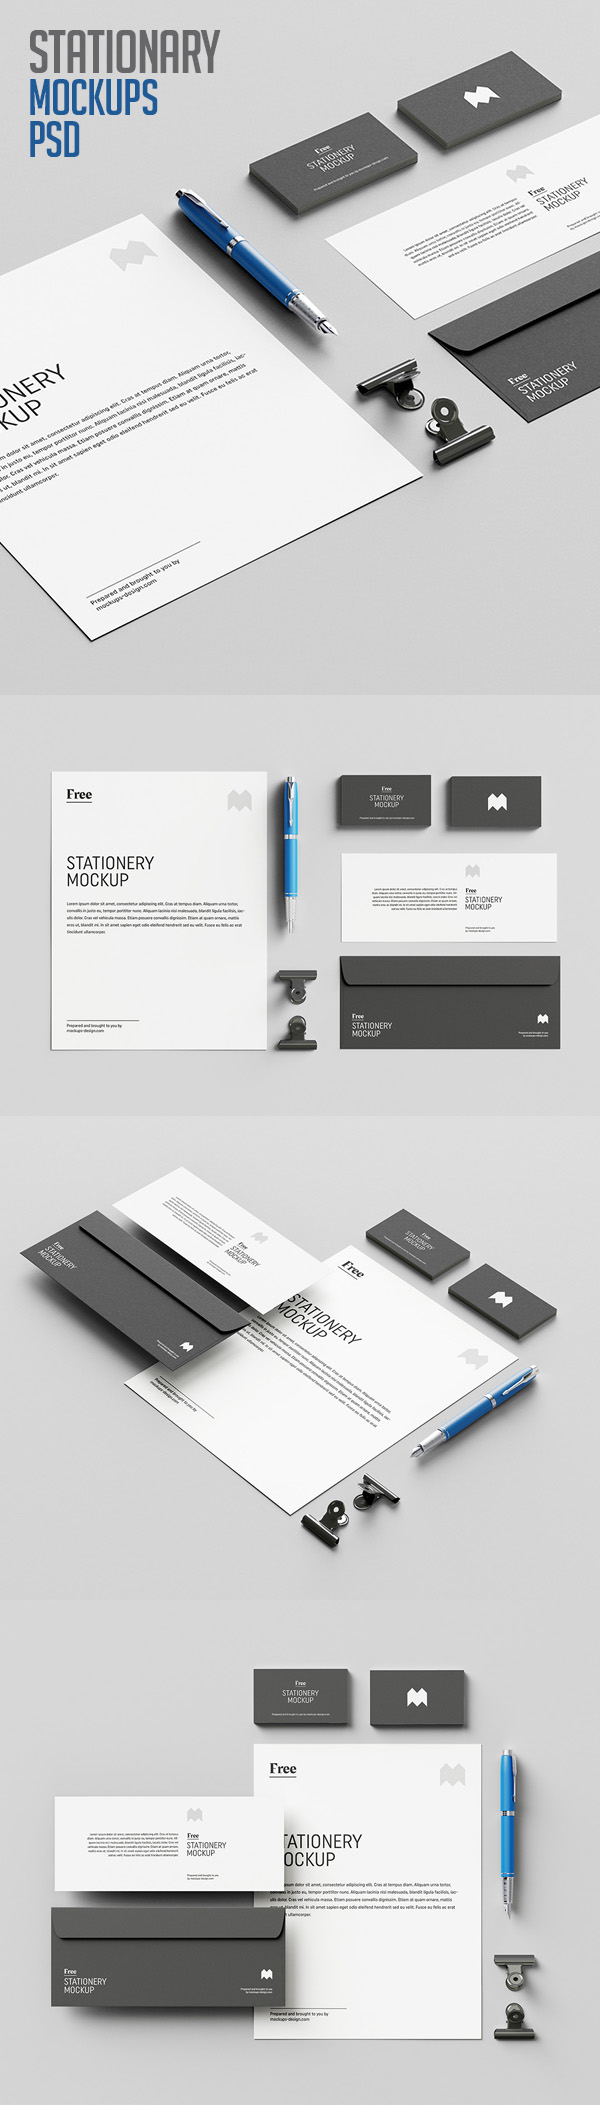 Free Stationary Mockups PSD